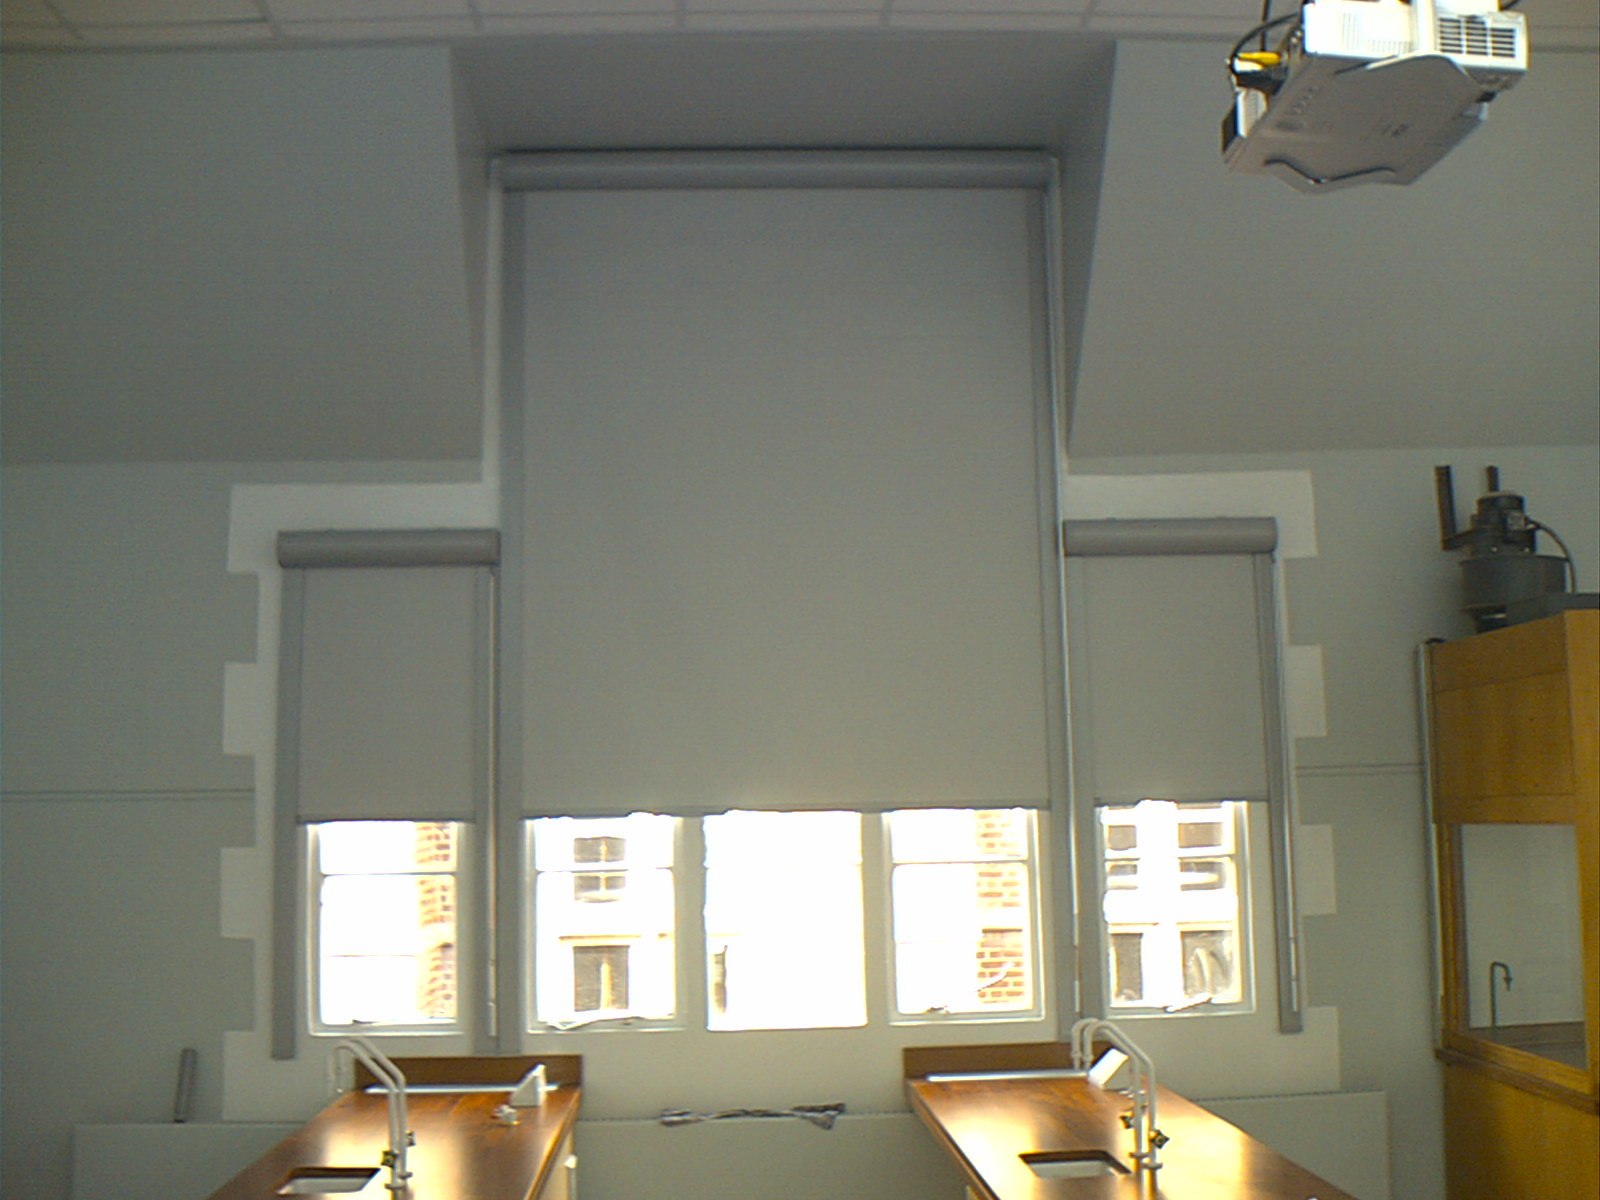 Commercial Blinds Amp Window Films Blinds And Window Films